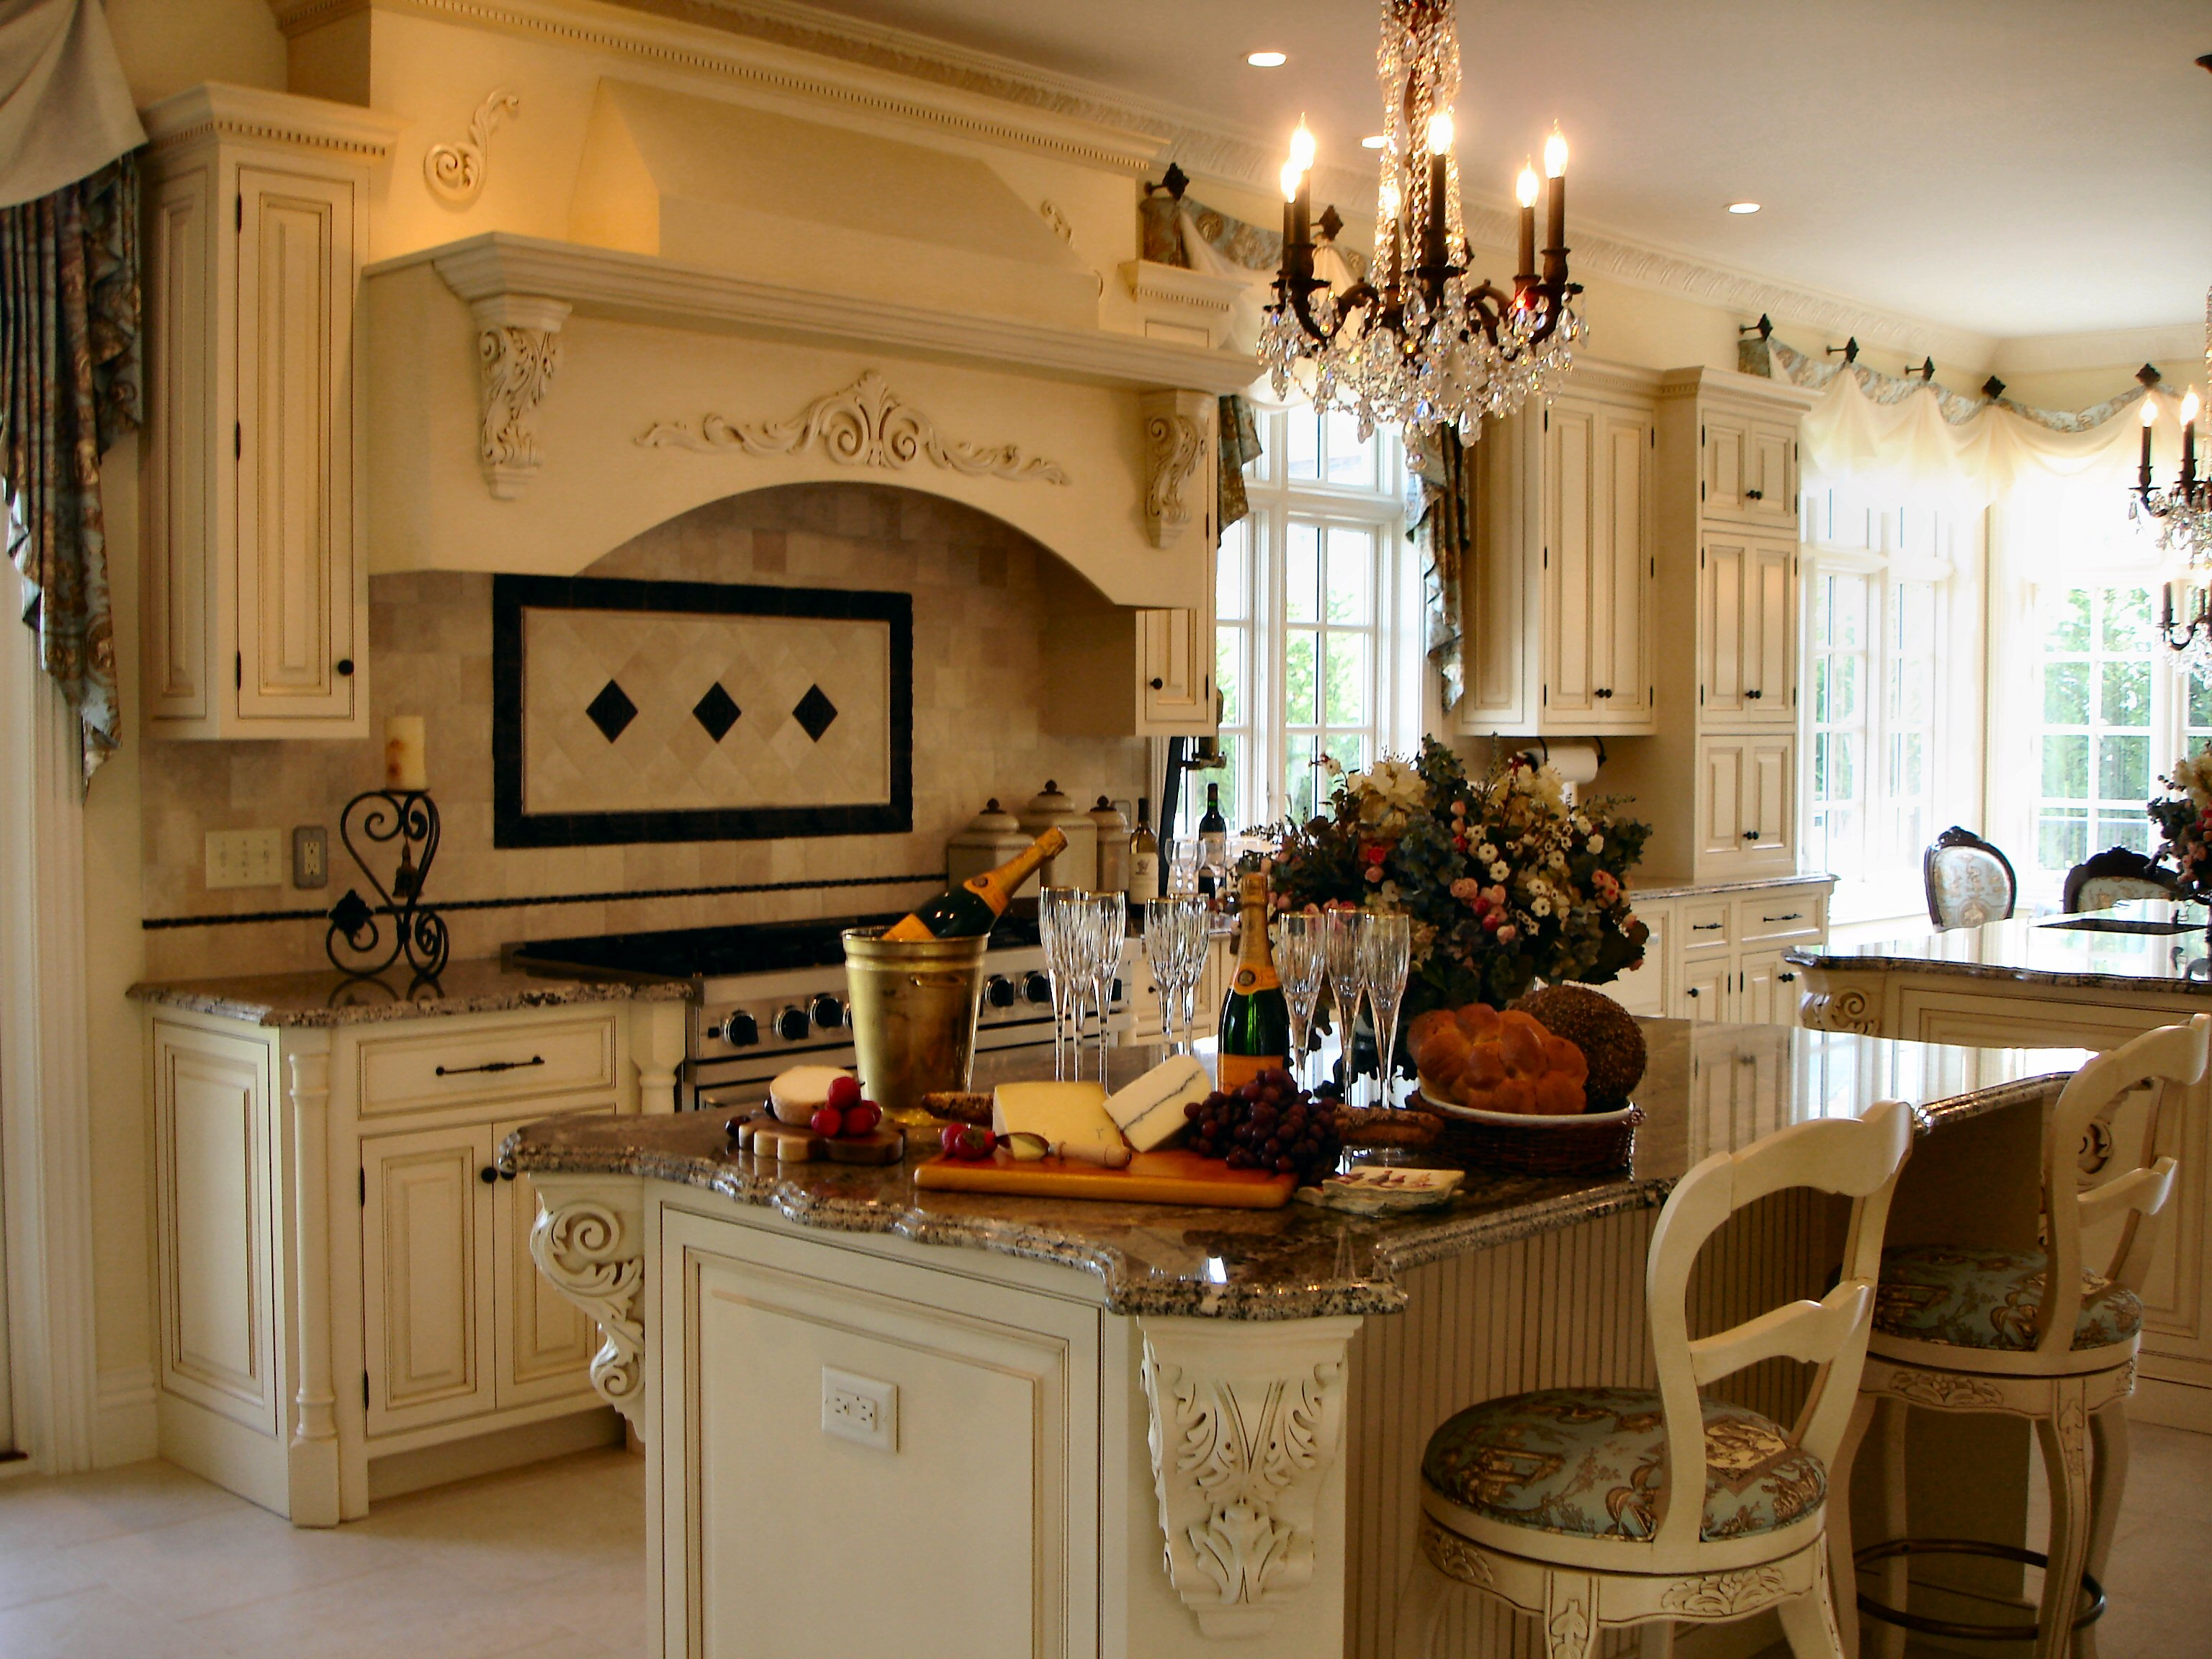 NJ Kitchen Design & Remodeling | Design Build Planners